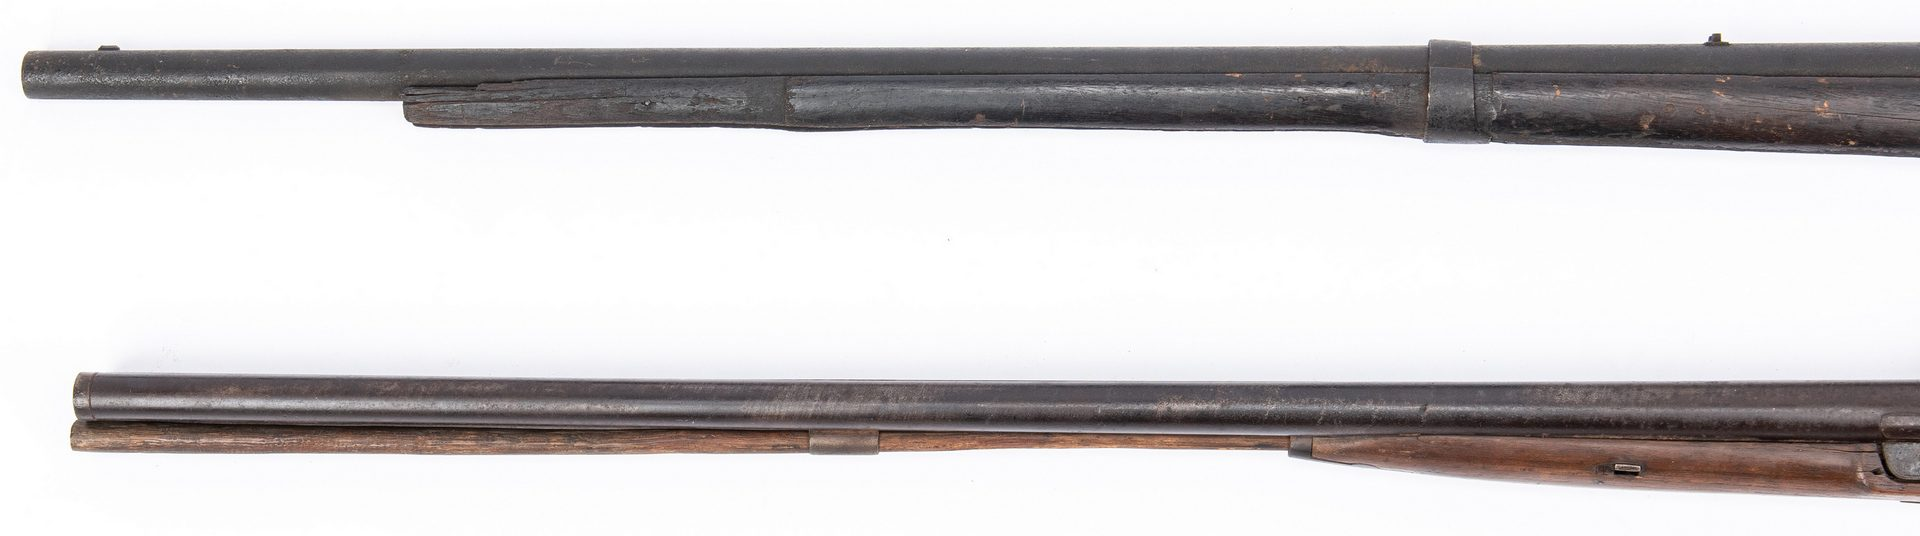 Lot 181: 2 Relic Early/Mid 19th Century Firearms, poss. Battlefield Pickup